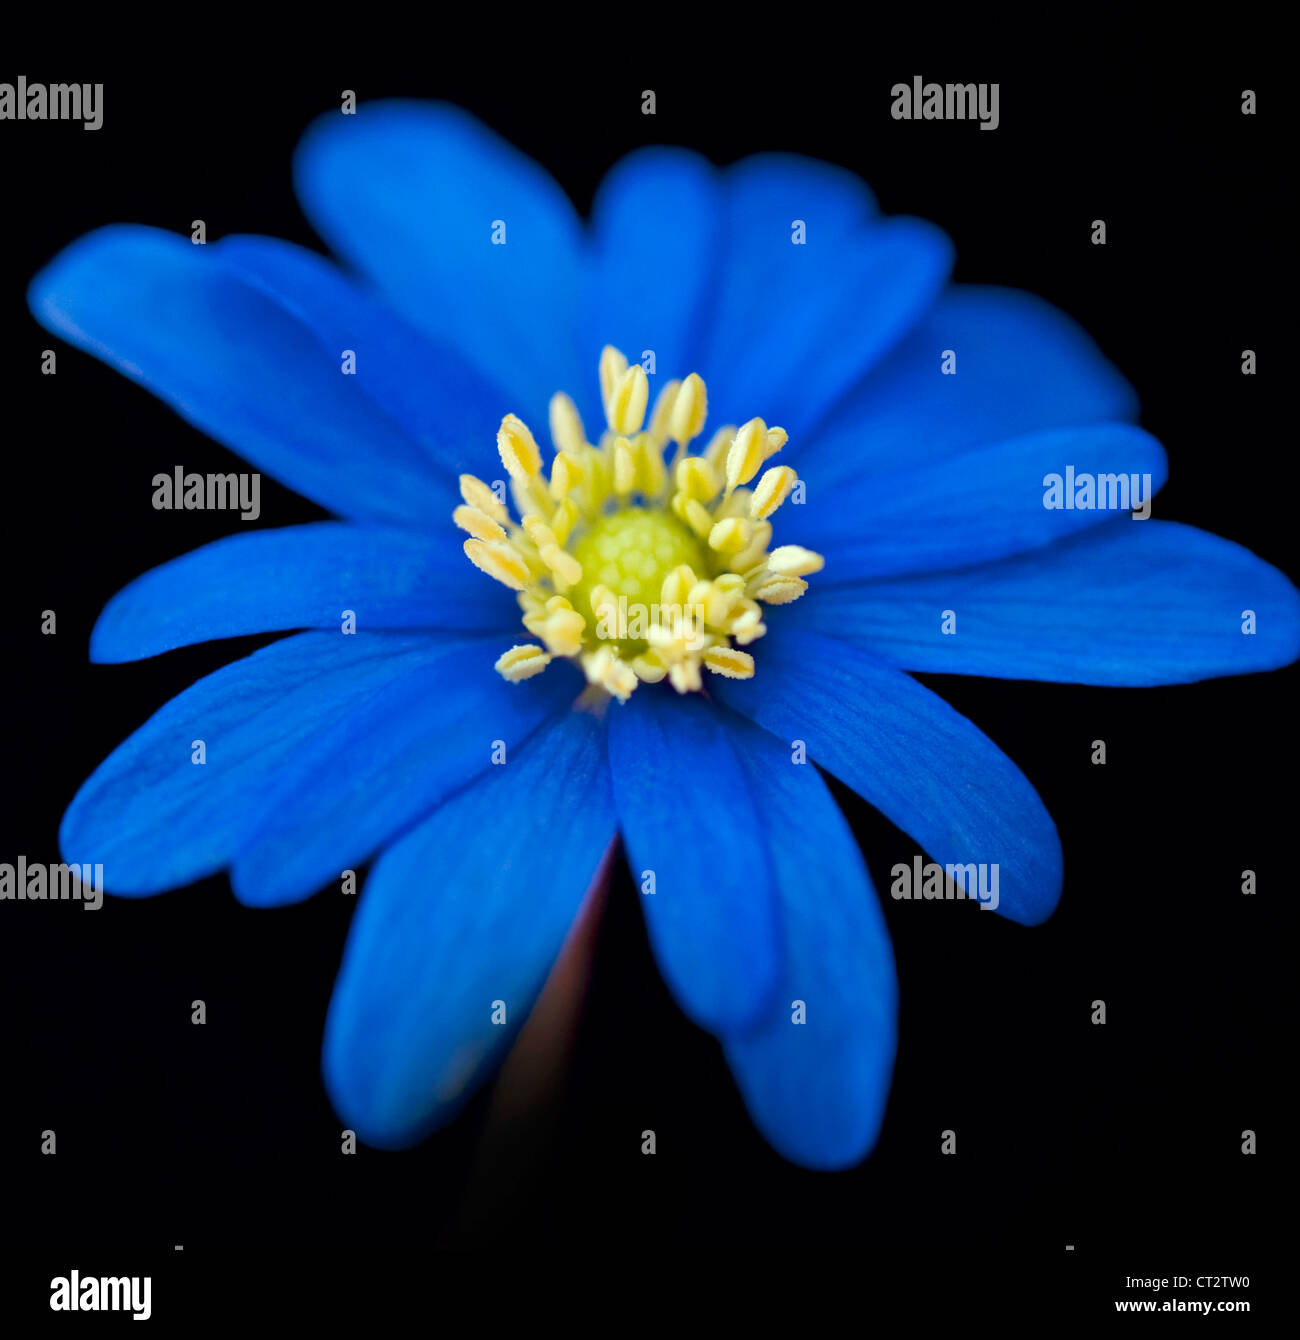 Flowers against black background stock photos flowers against anemone single blue flower against a black background stock image dhlflorist Images